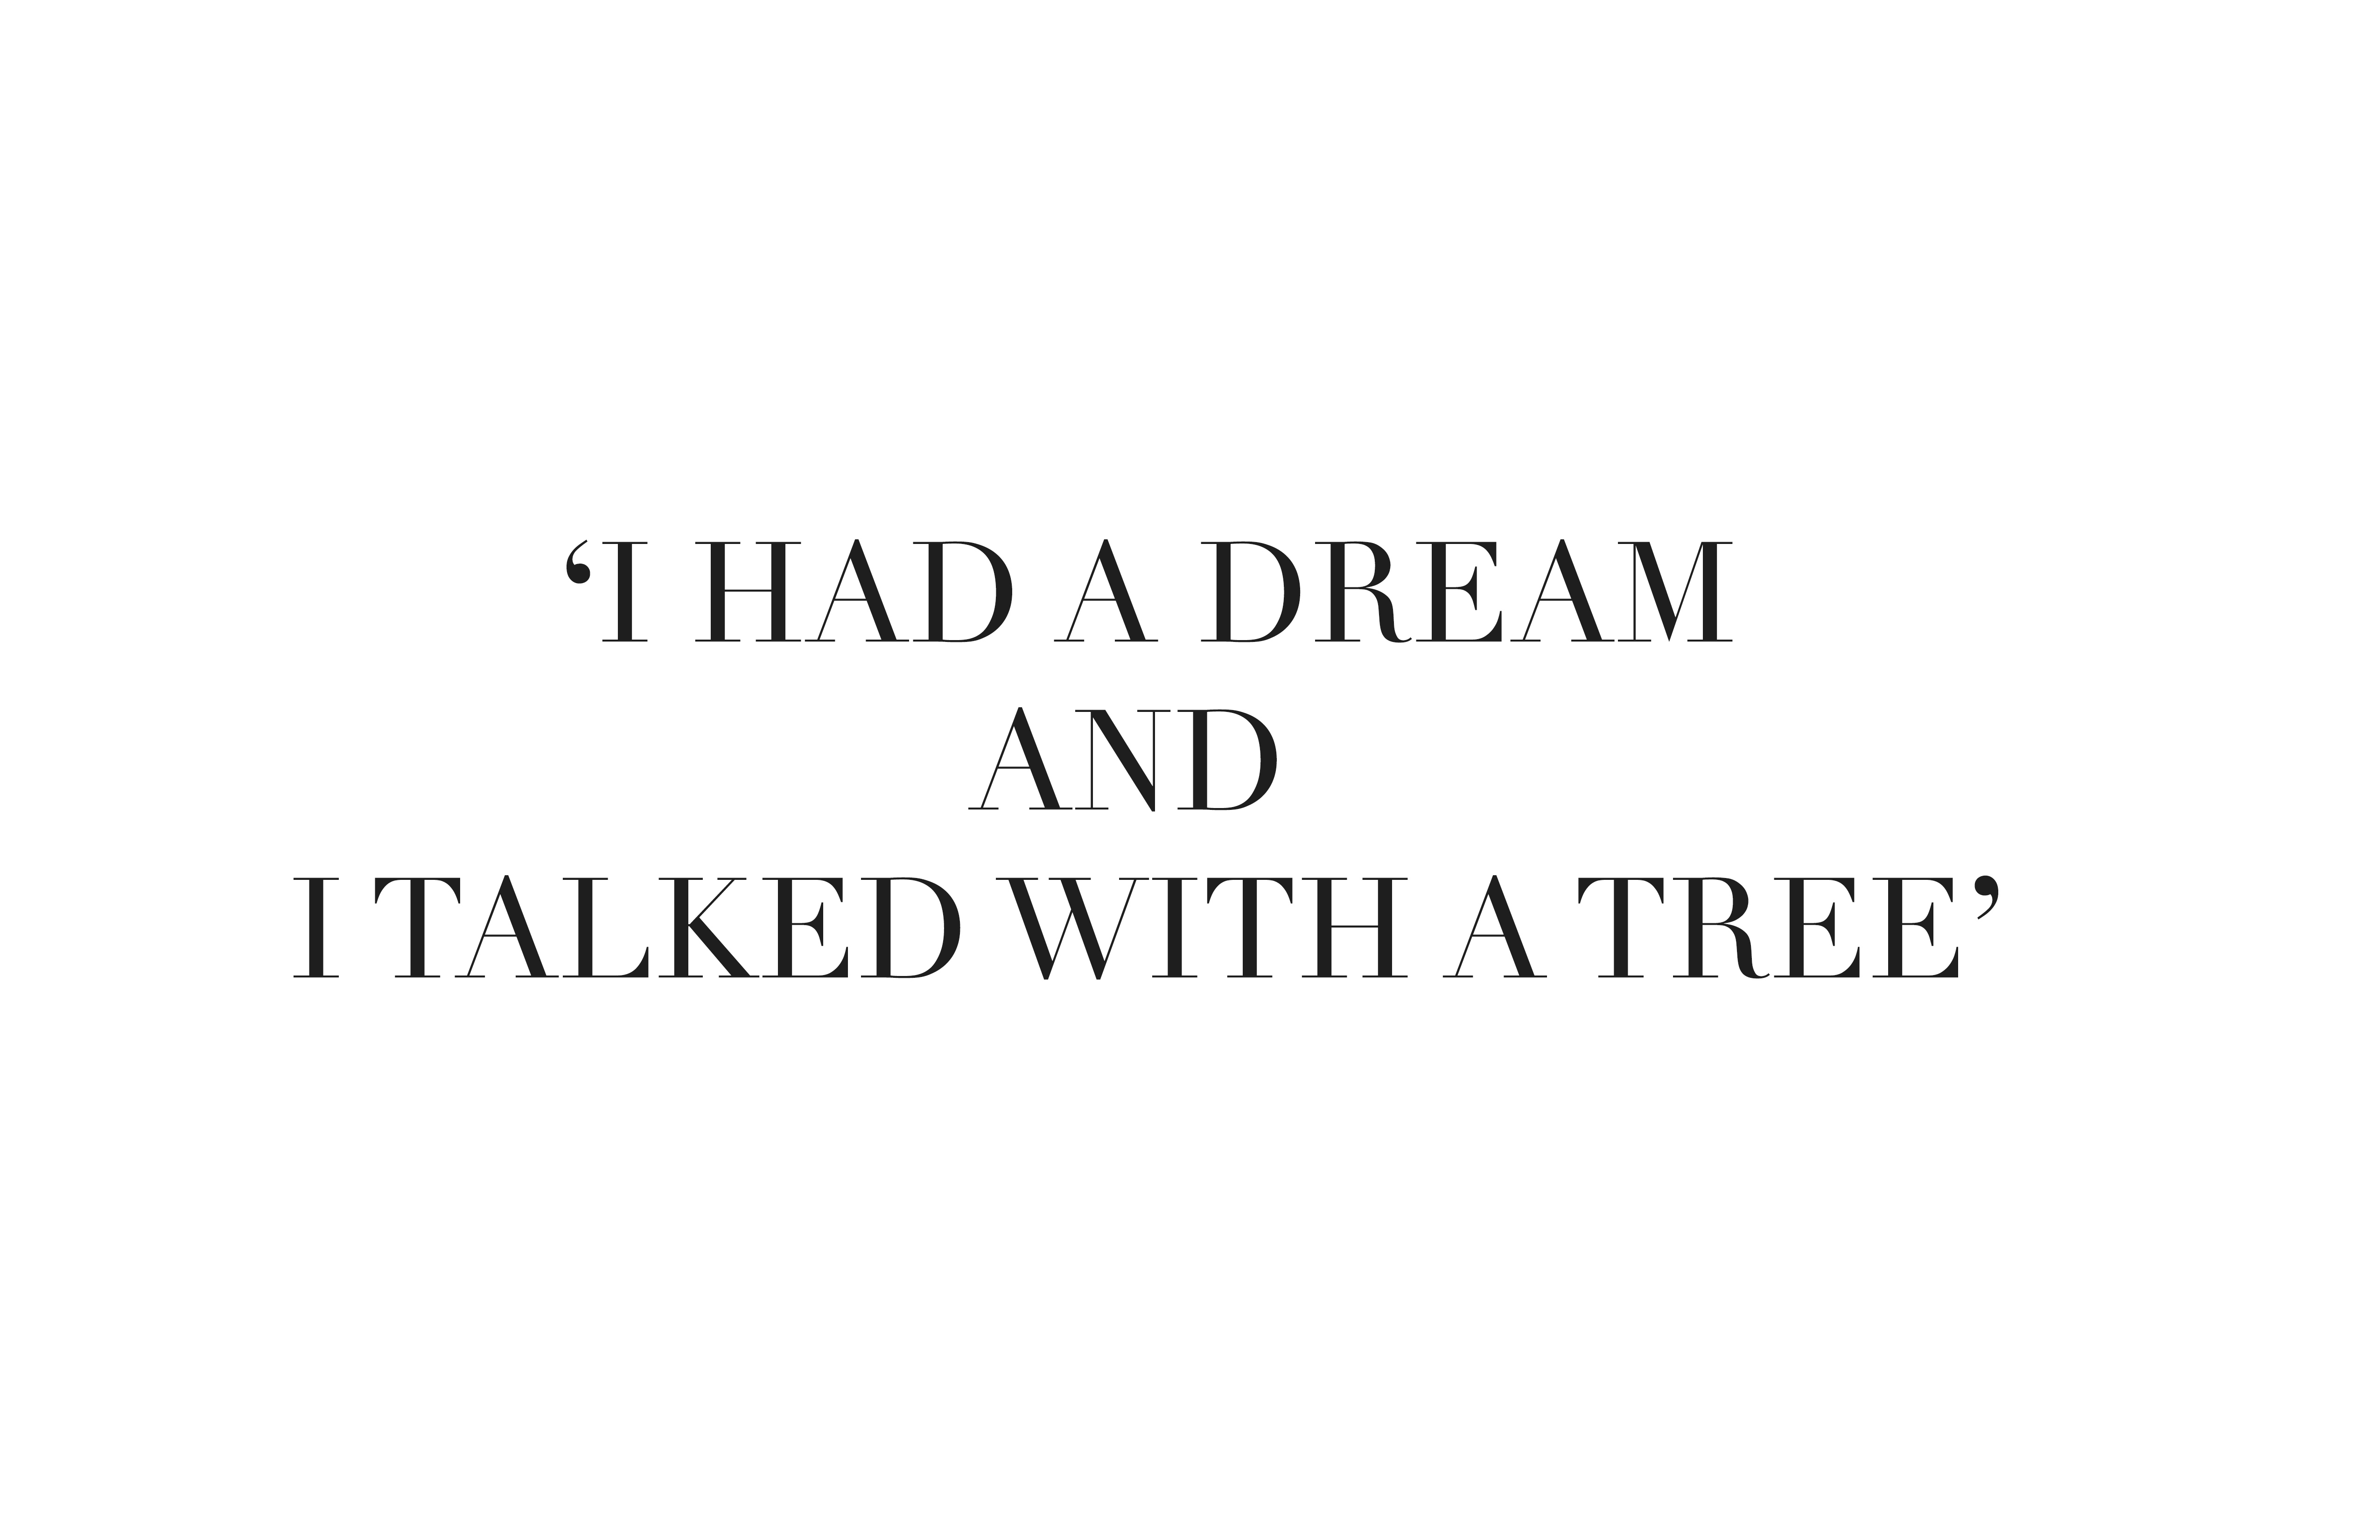 I had a dream & I talked with a tree